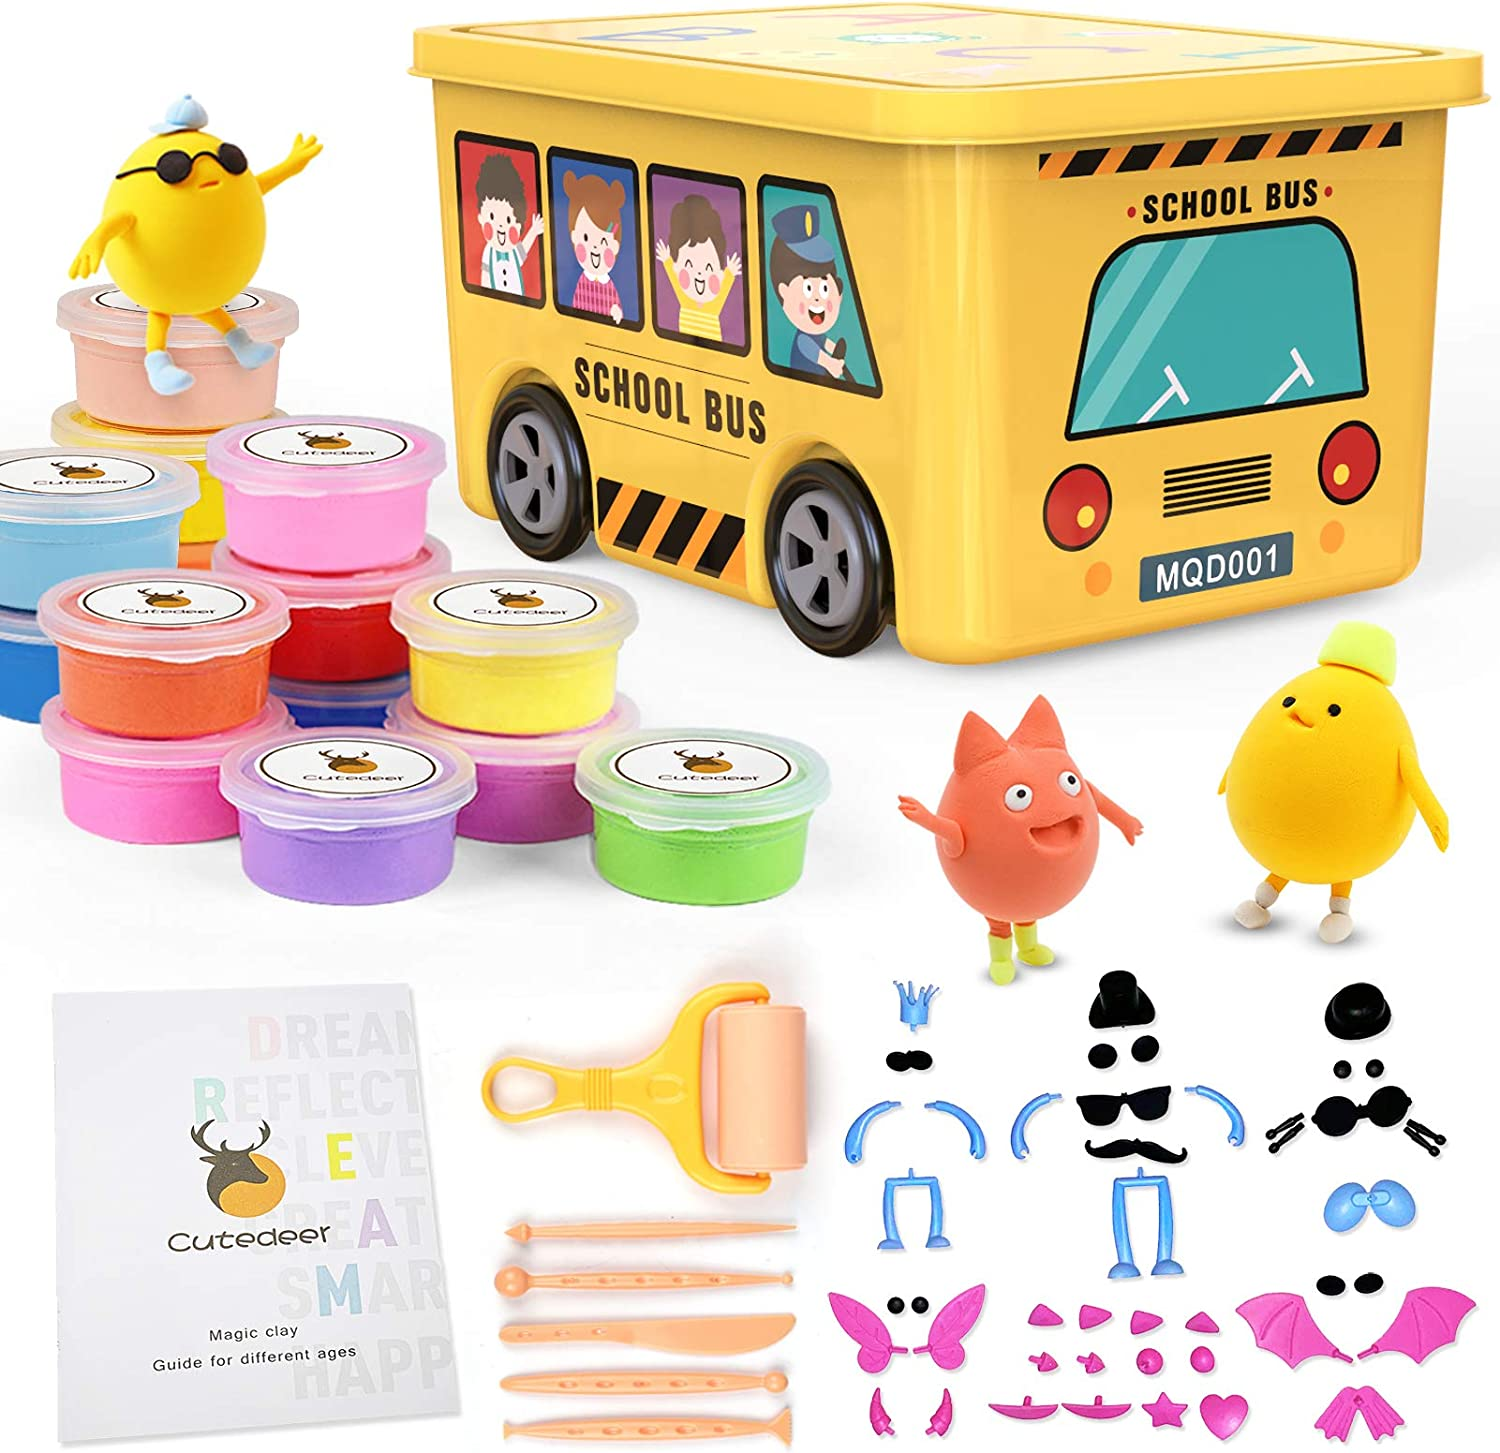 36 Colors Air Dry Clay Kit for Kids, Magic Modeling Clay Ultra Light Clay, Sculpting Tools, Accessories and Tutorials, DIY Art Craft Gifts for Boys Girls with School Bus Box